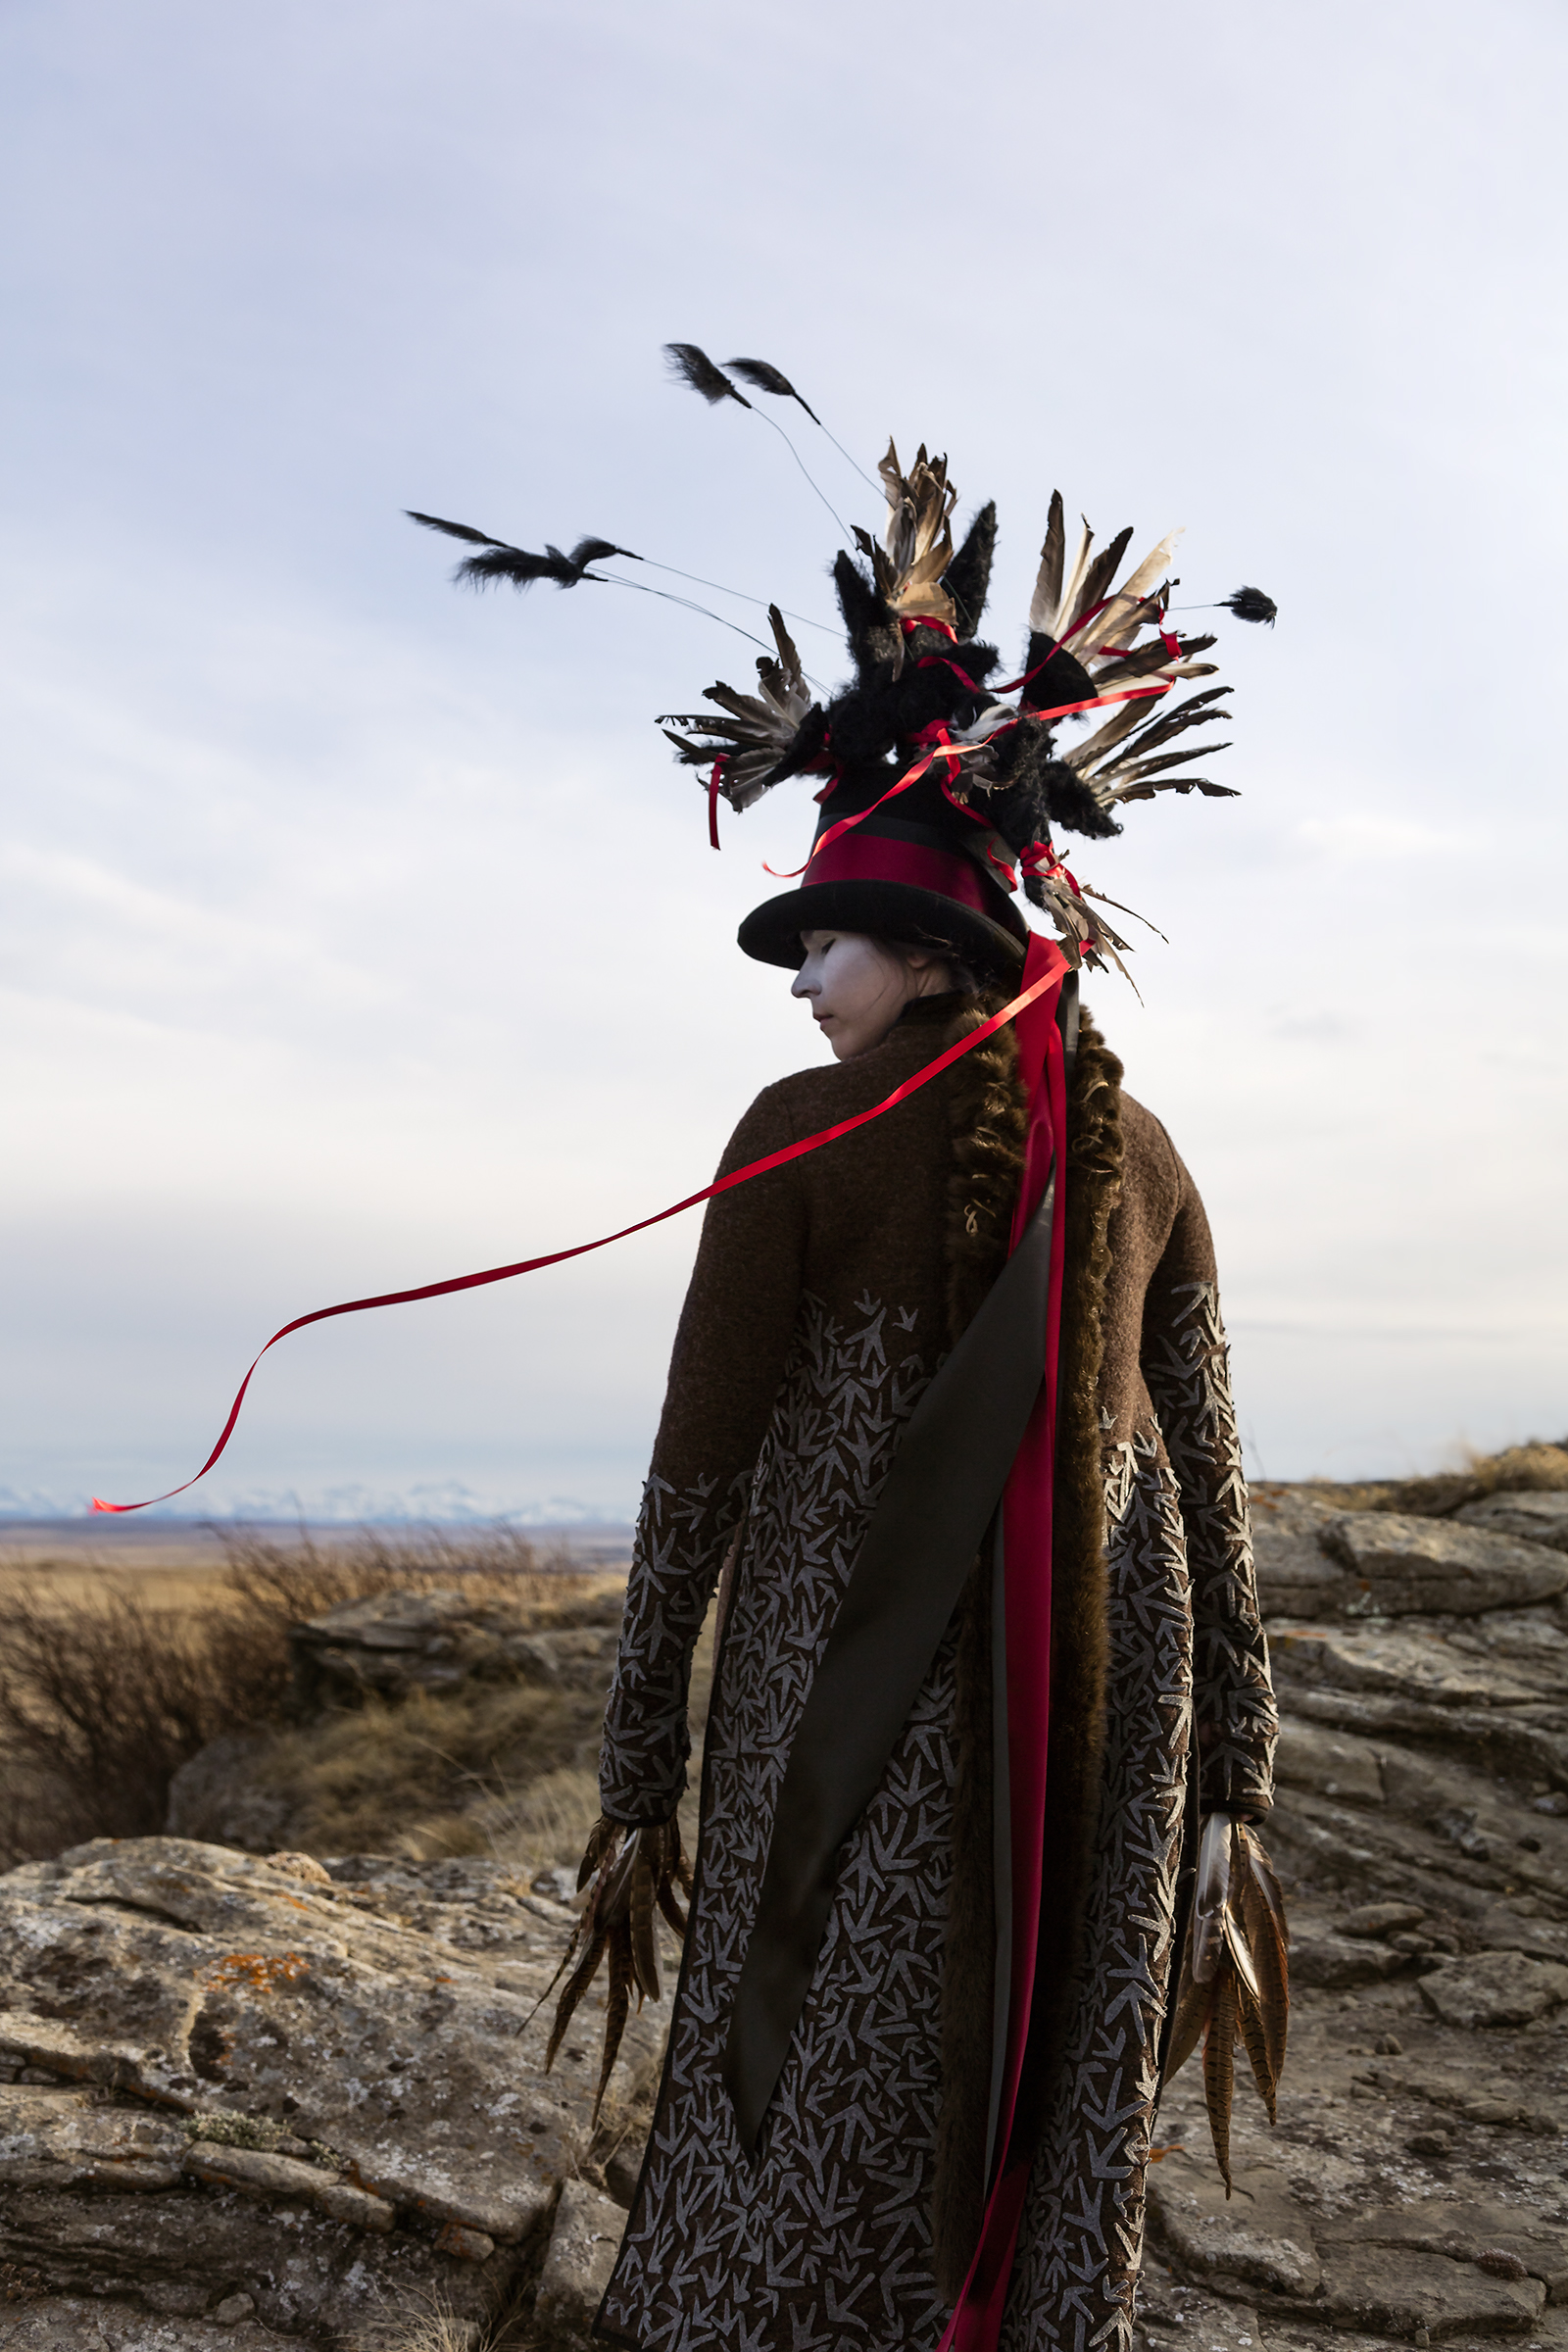 Meryl McMaster, Bring Me To This Place, 2017. Giclée print. Courtesy of the artist and Pierre-François Ouellette Art Contemporain